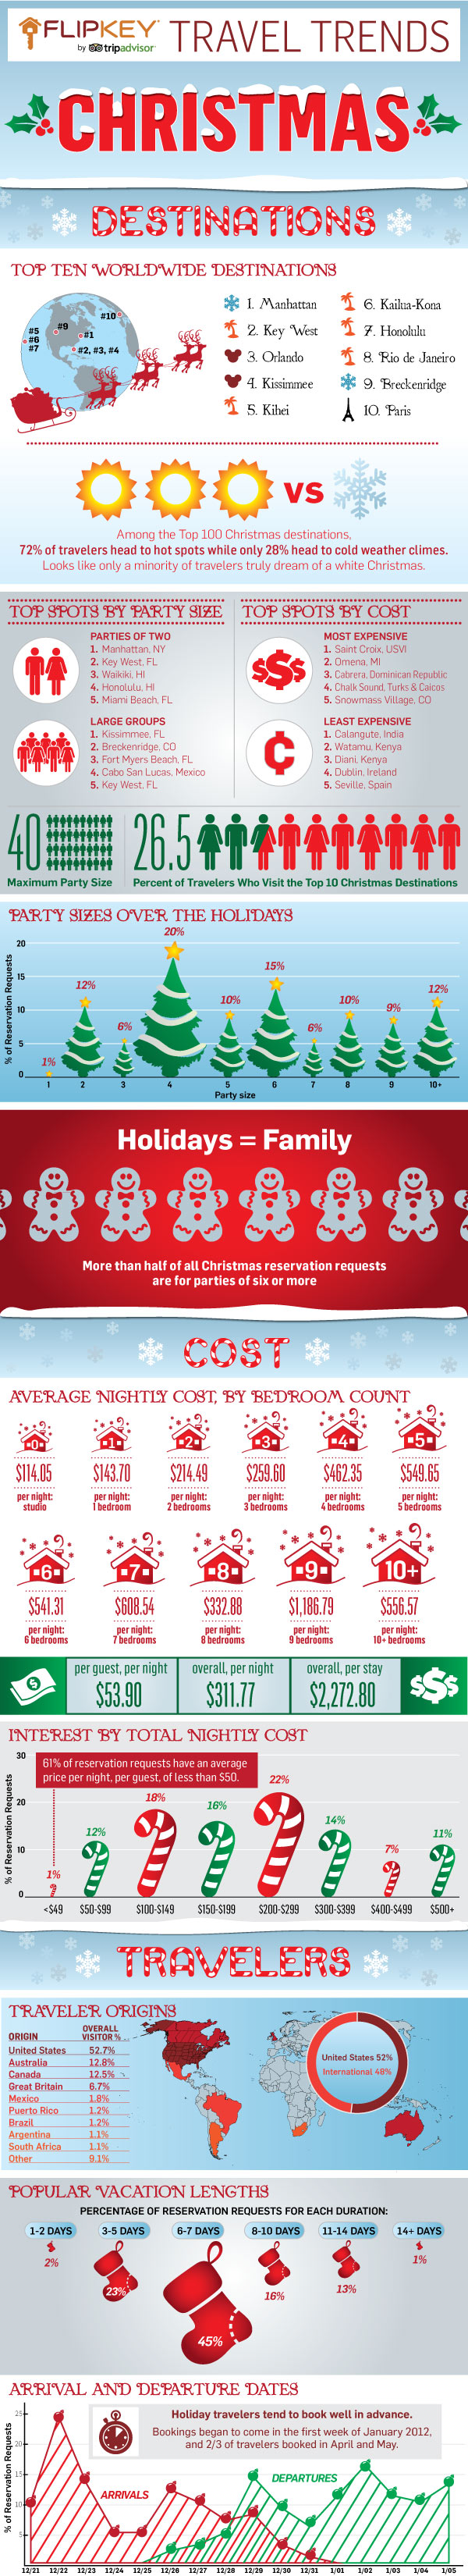 Christmas Travel Trends: Surf Beats Snow in 2012